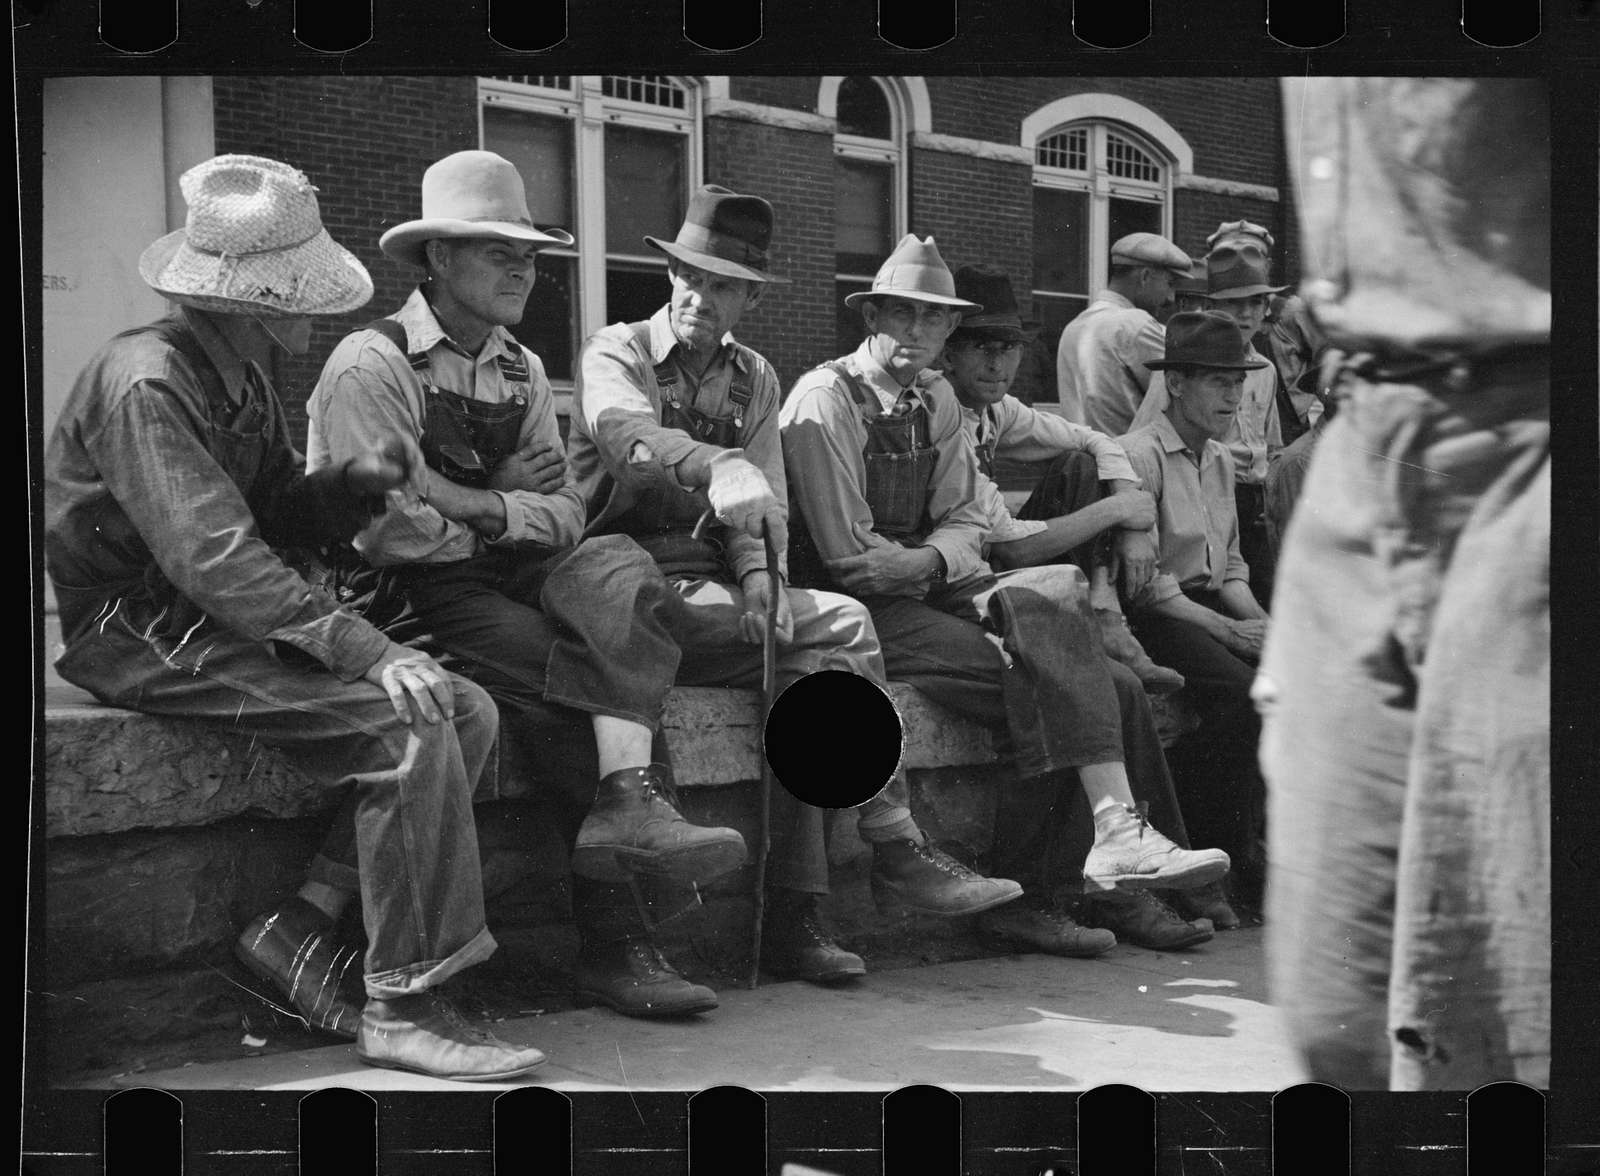 Untitled photo, possibly related to: Loafers' wall, by courthouse, Batesville, Arkansas